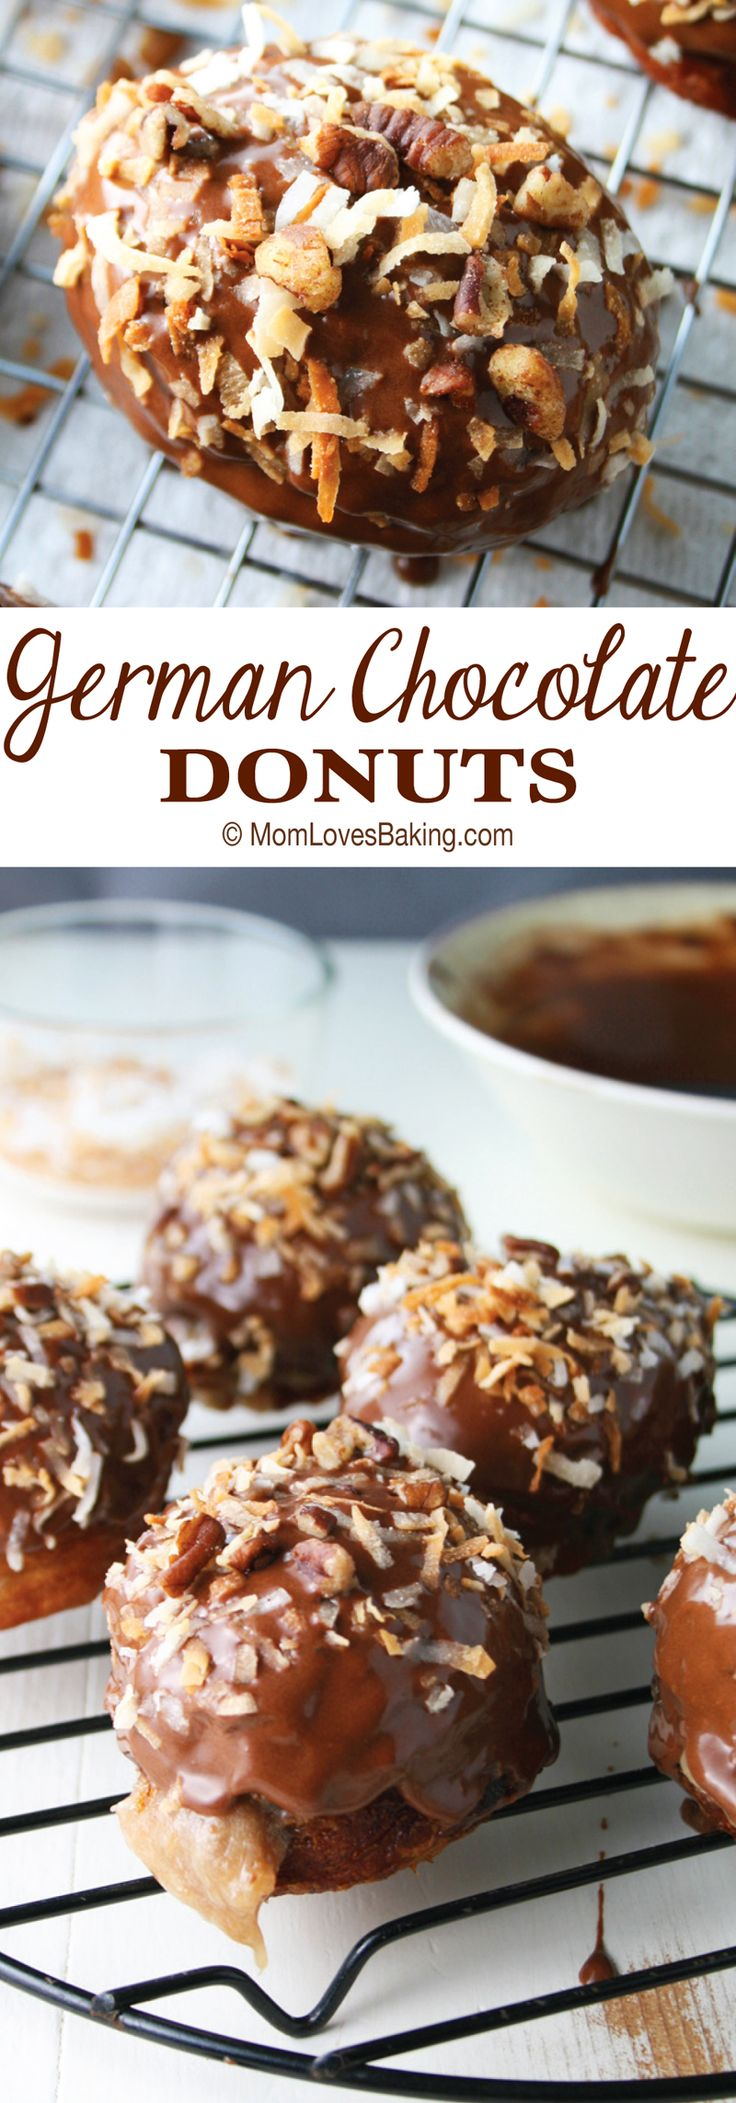 25+ best Chocolate donuts ideas on Pinterest | Baked doughnut ...